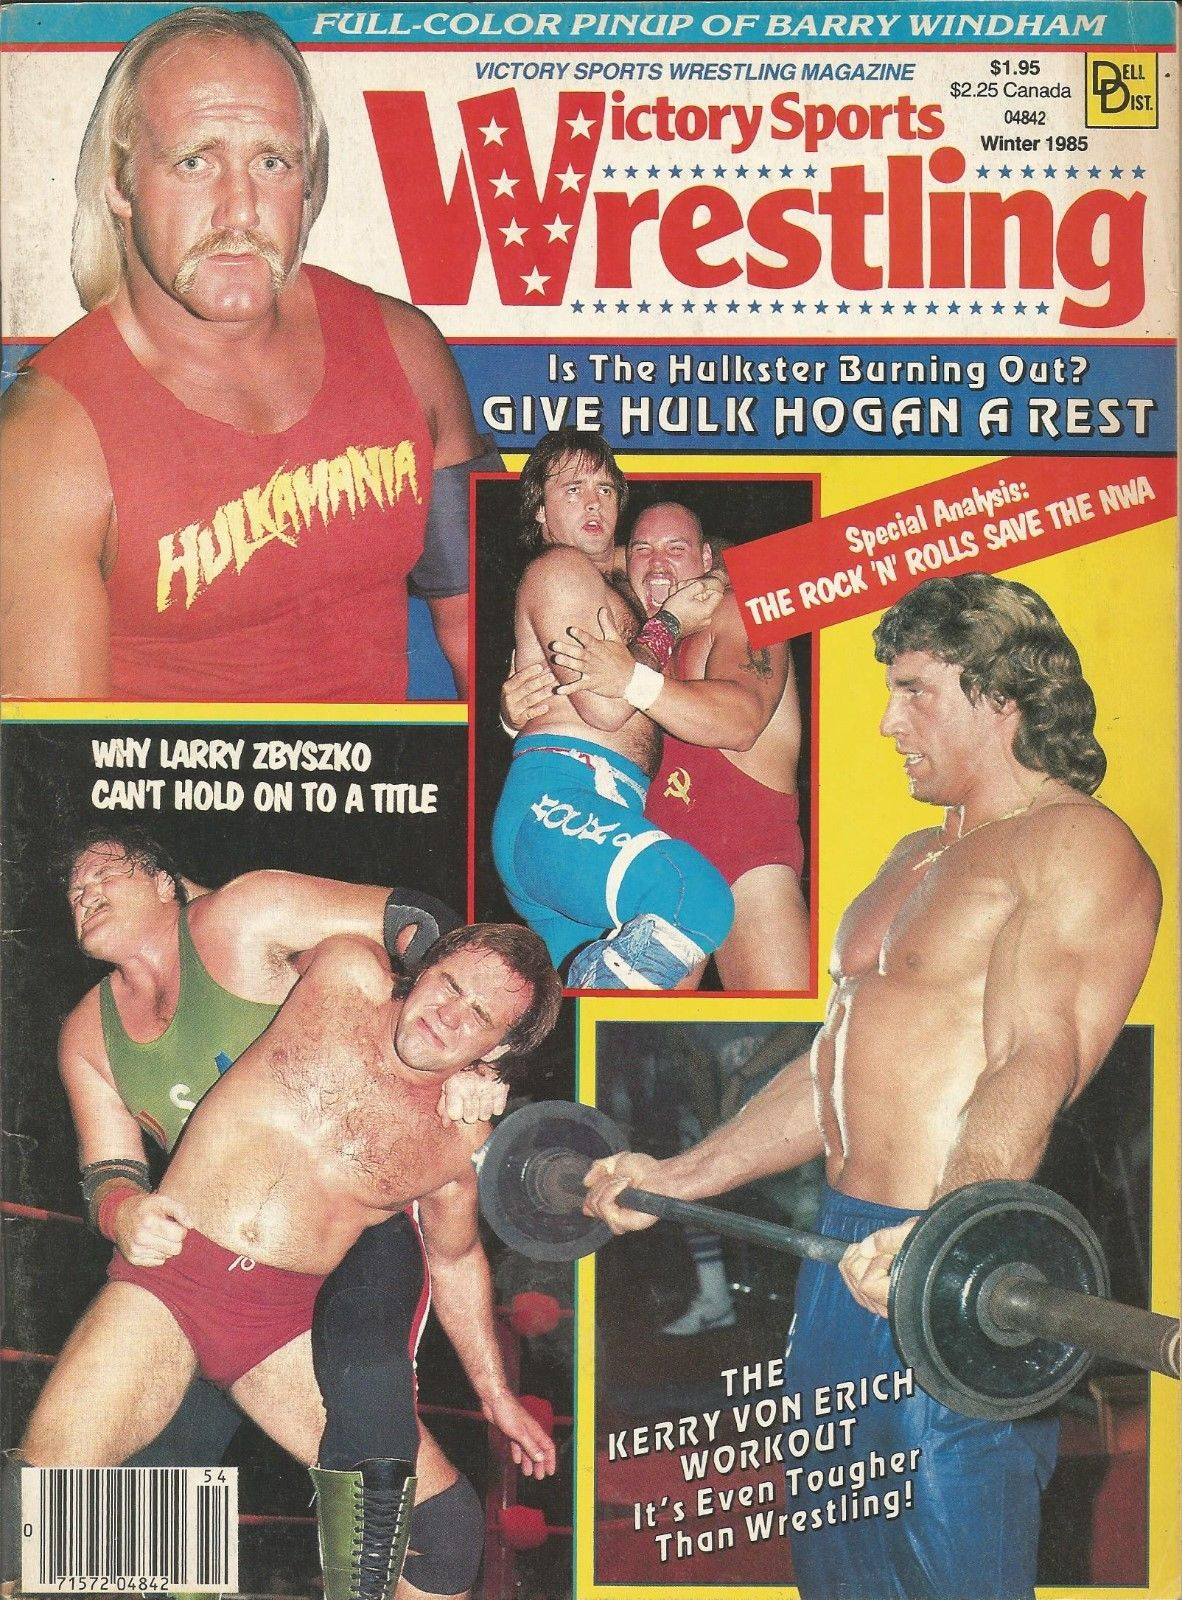 Victory Sports Wrestling - Winter 1985